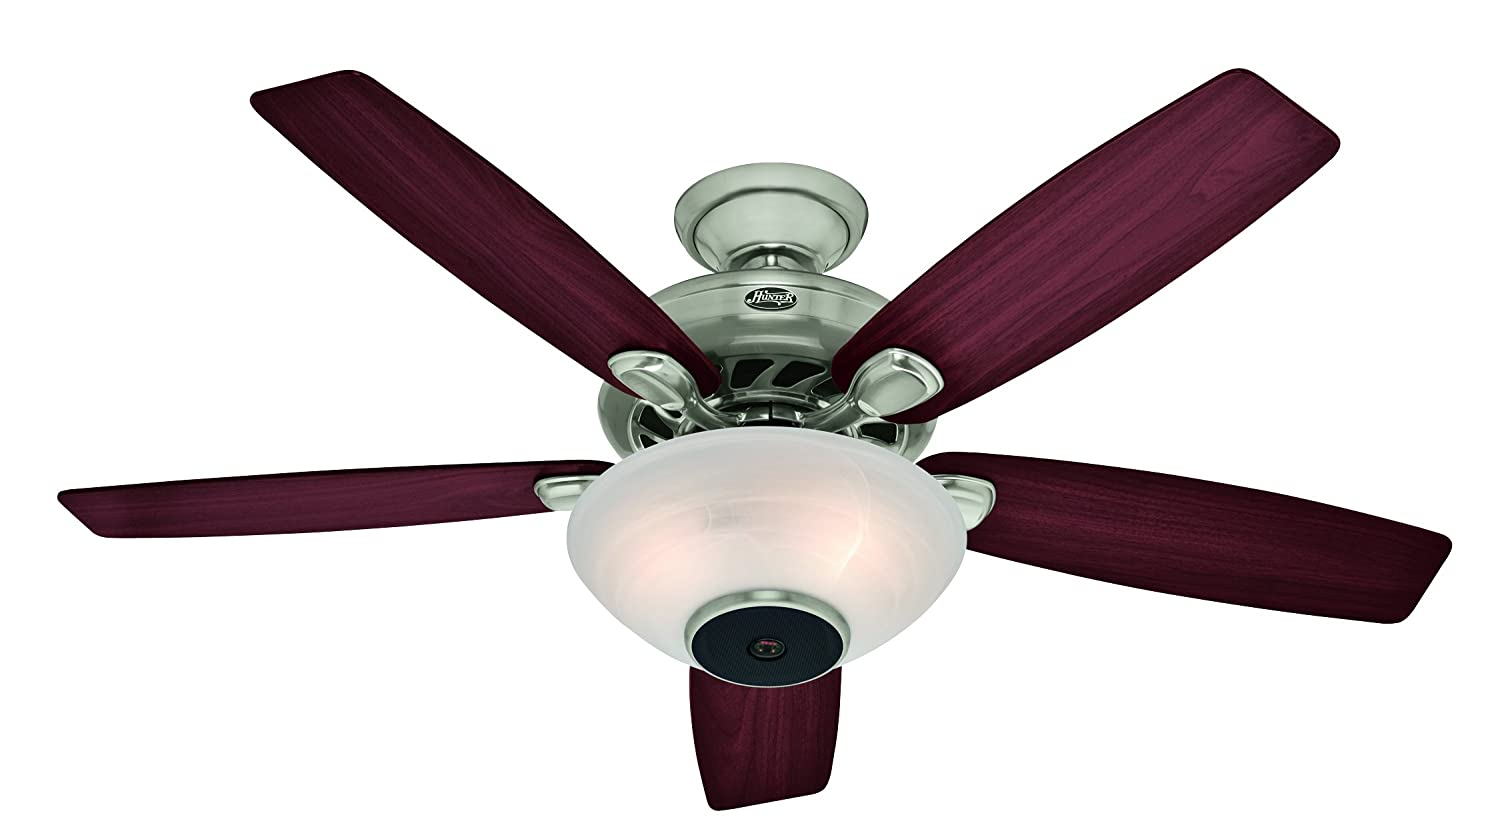 Hunter 21629 52 Inch Concert Breeze Ceiling Fan With Wireless Sound System Brushed Nickel Surround Com